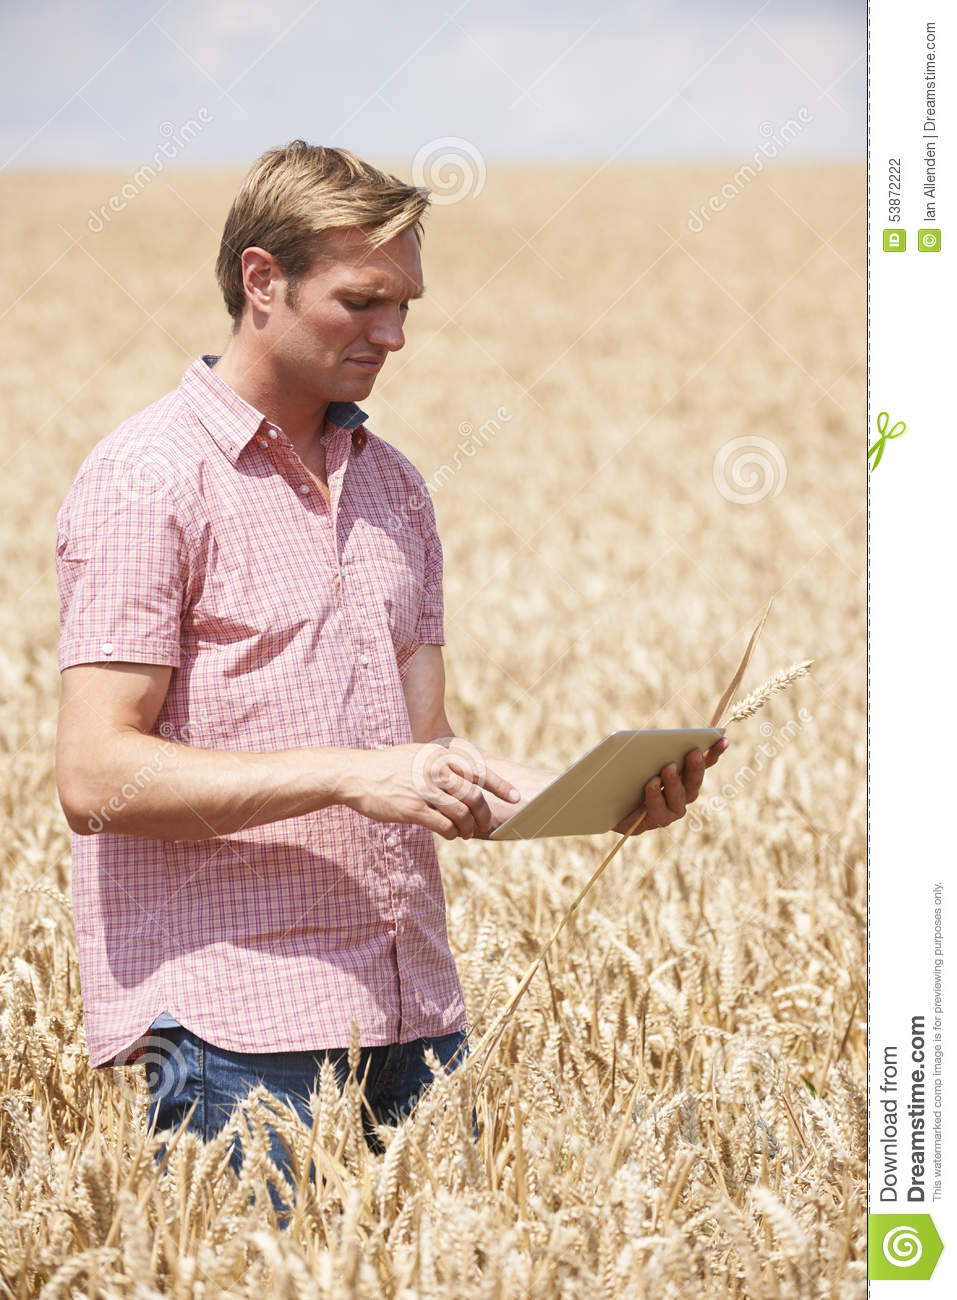 Farmer Inspecting Crops In Field Using Digital Tablet